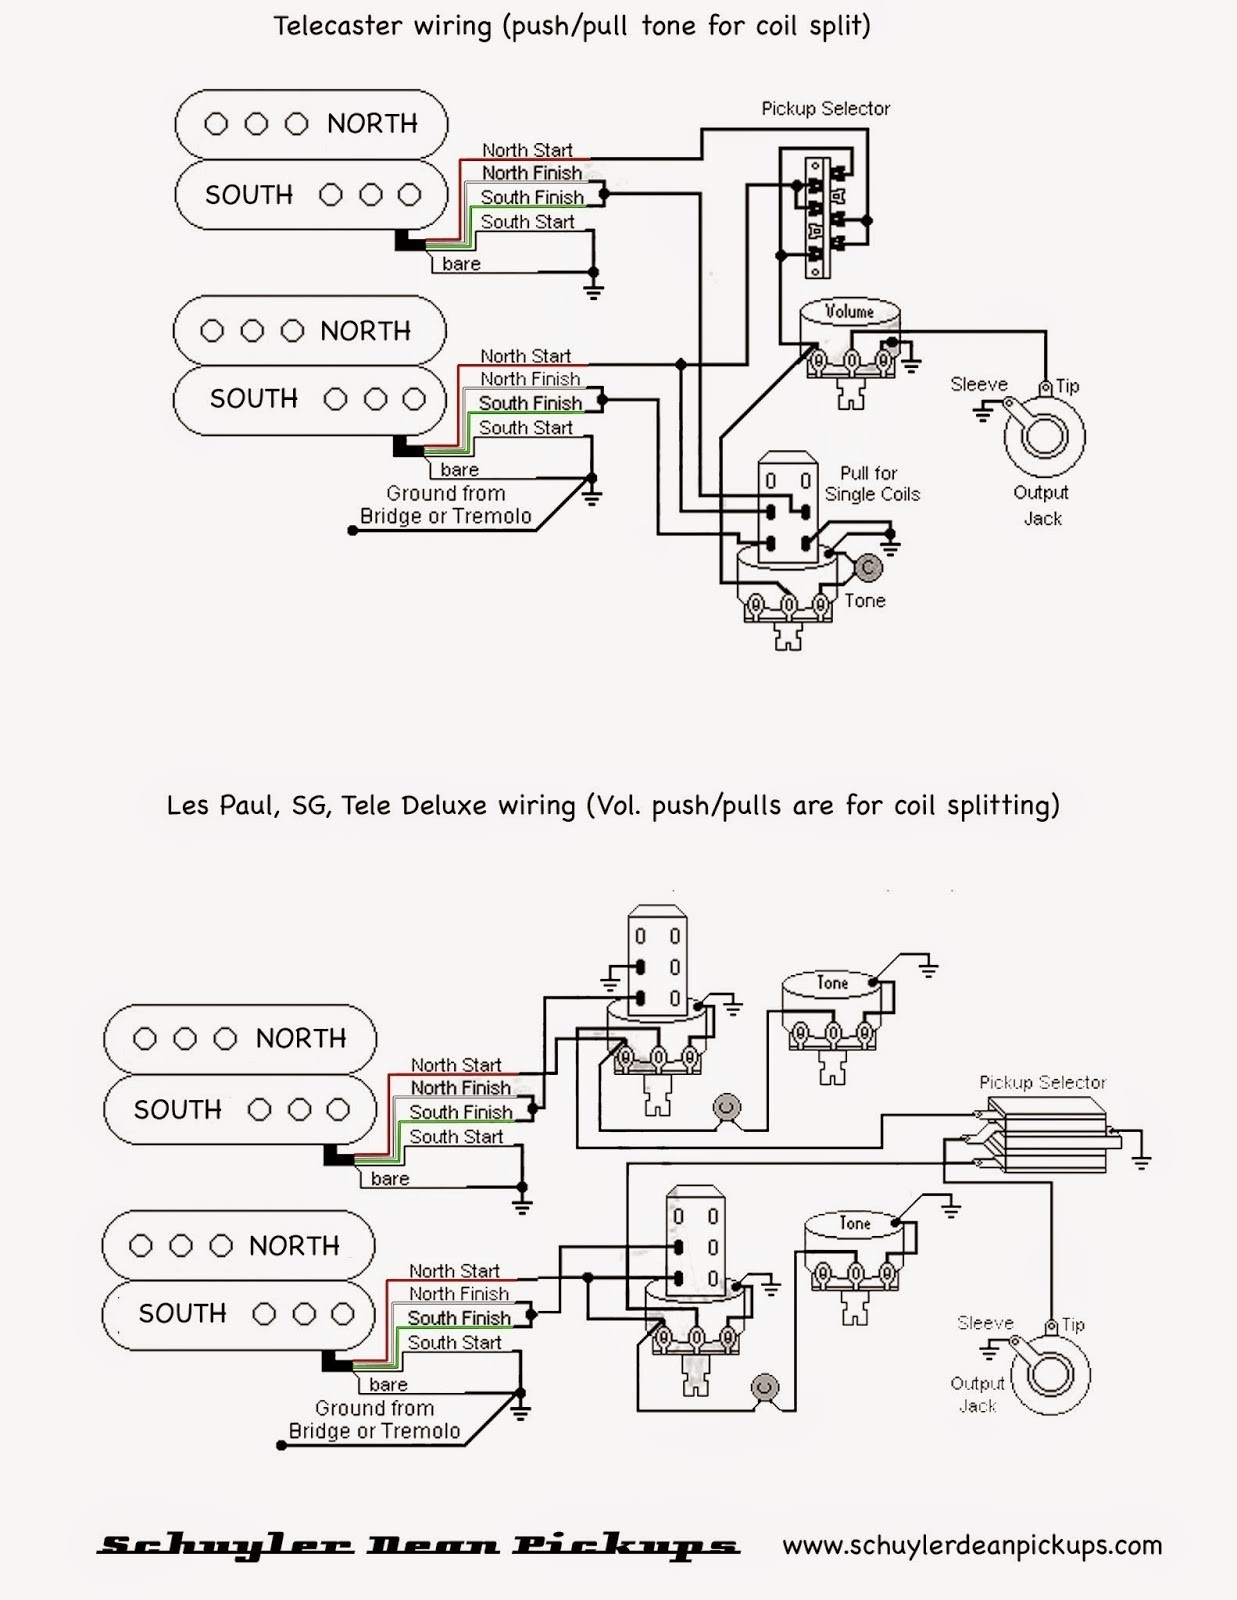 gibson 57 classic 4 conductor wiring diagram Download-gibson les paul deluxe wiring diagram new epiphone les paul pickup rh yourproducthere co Epiphone Les 7-l